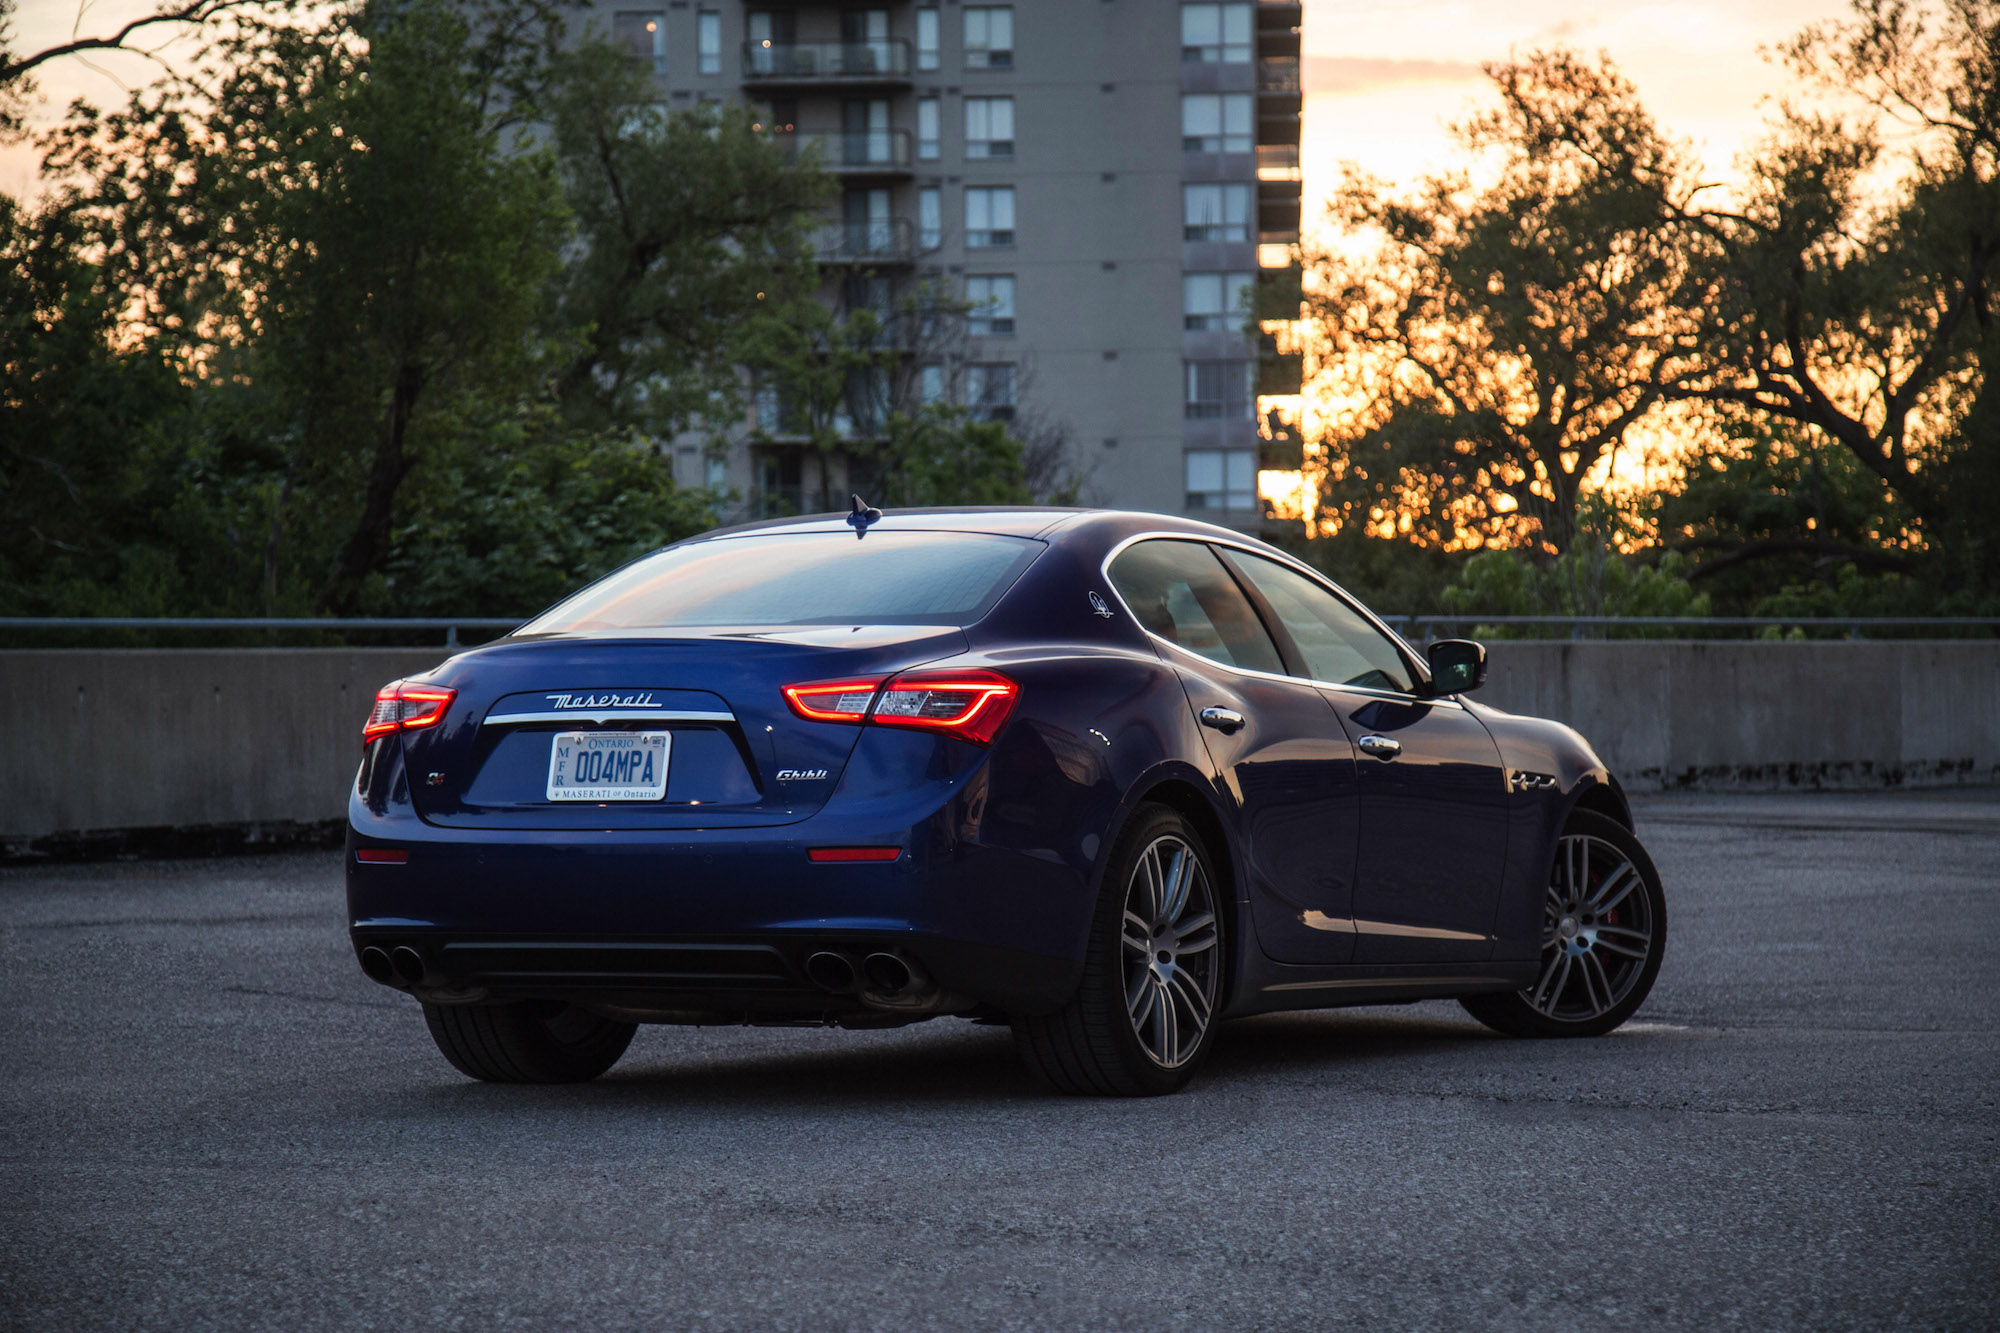 Maserati Ghibli Price >> Review: 2016 Maserati Ghibli S Q4 | Canadian Auto Review